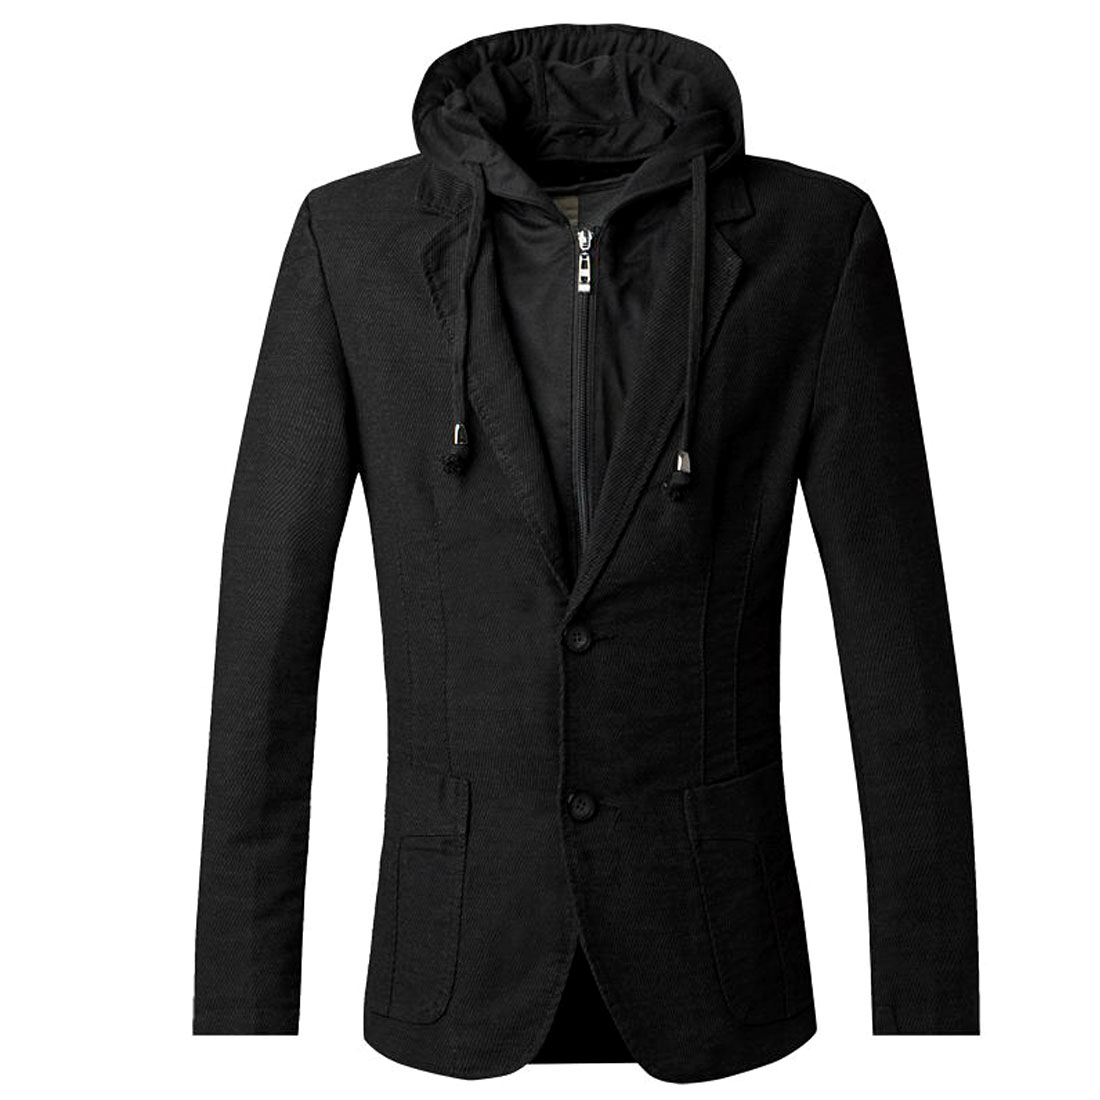 Men Hooded Two Button Closure Pockets Design Blazer Black S